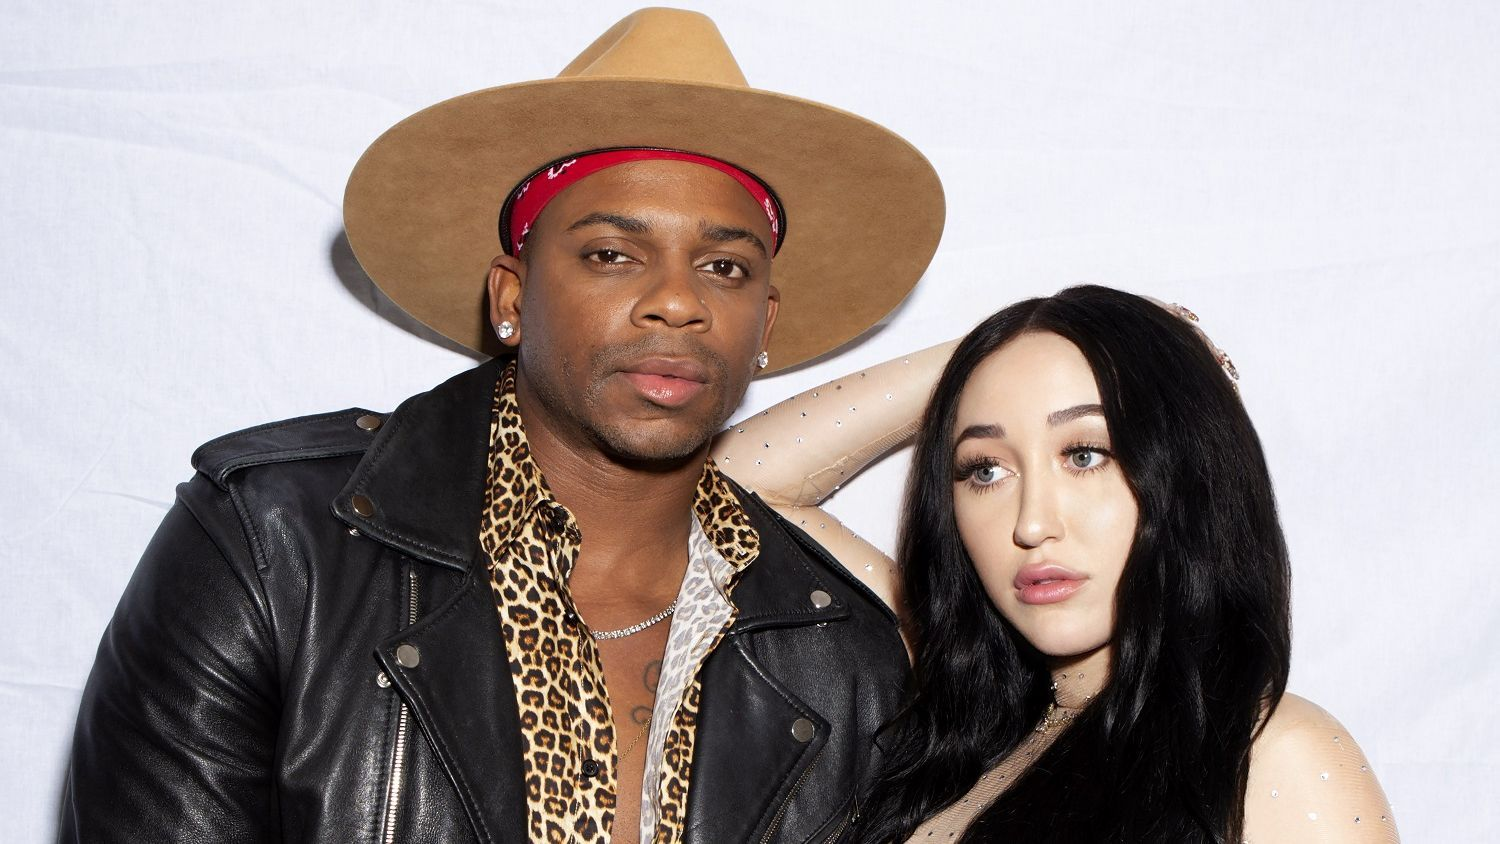 Jimmie Allen Noah Cyrus Add Stranger Things Vibe To